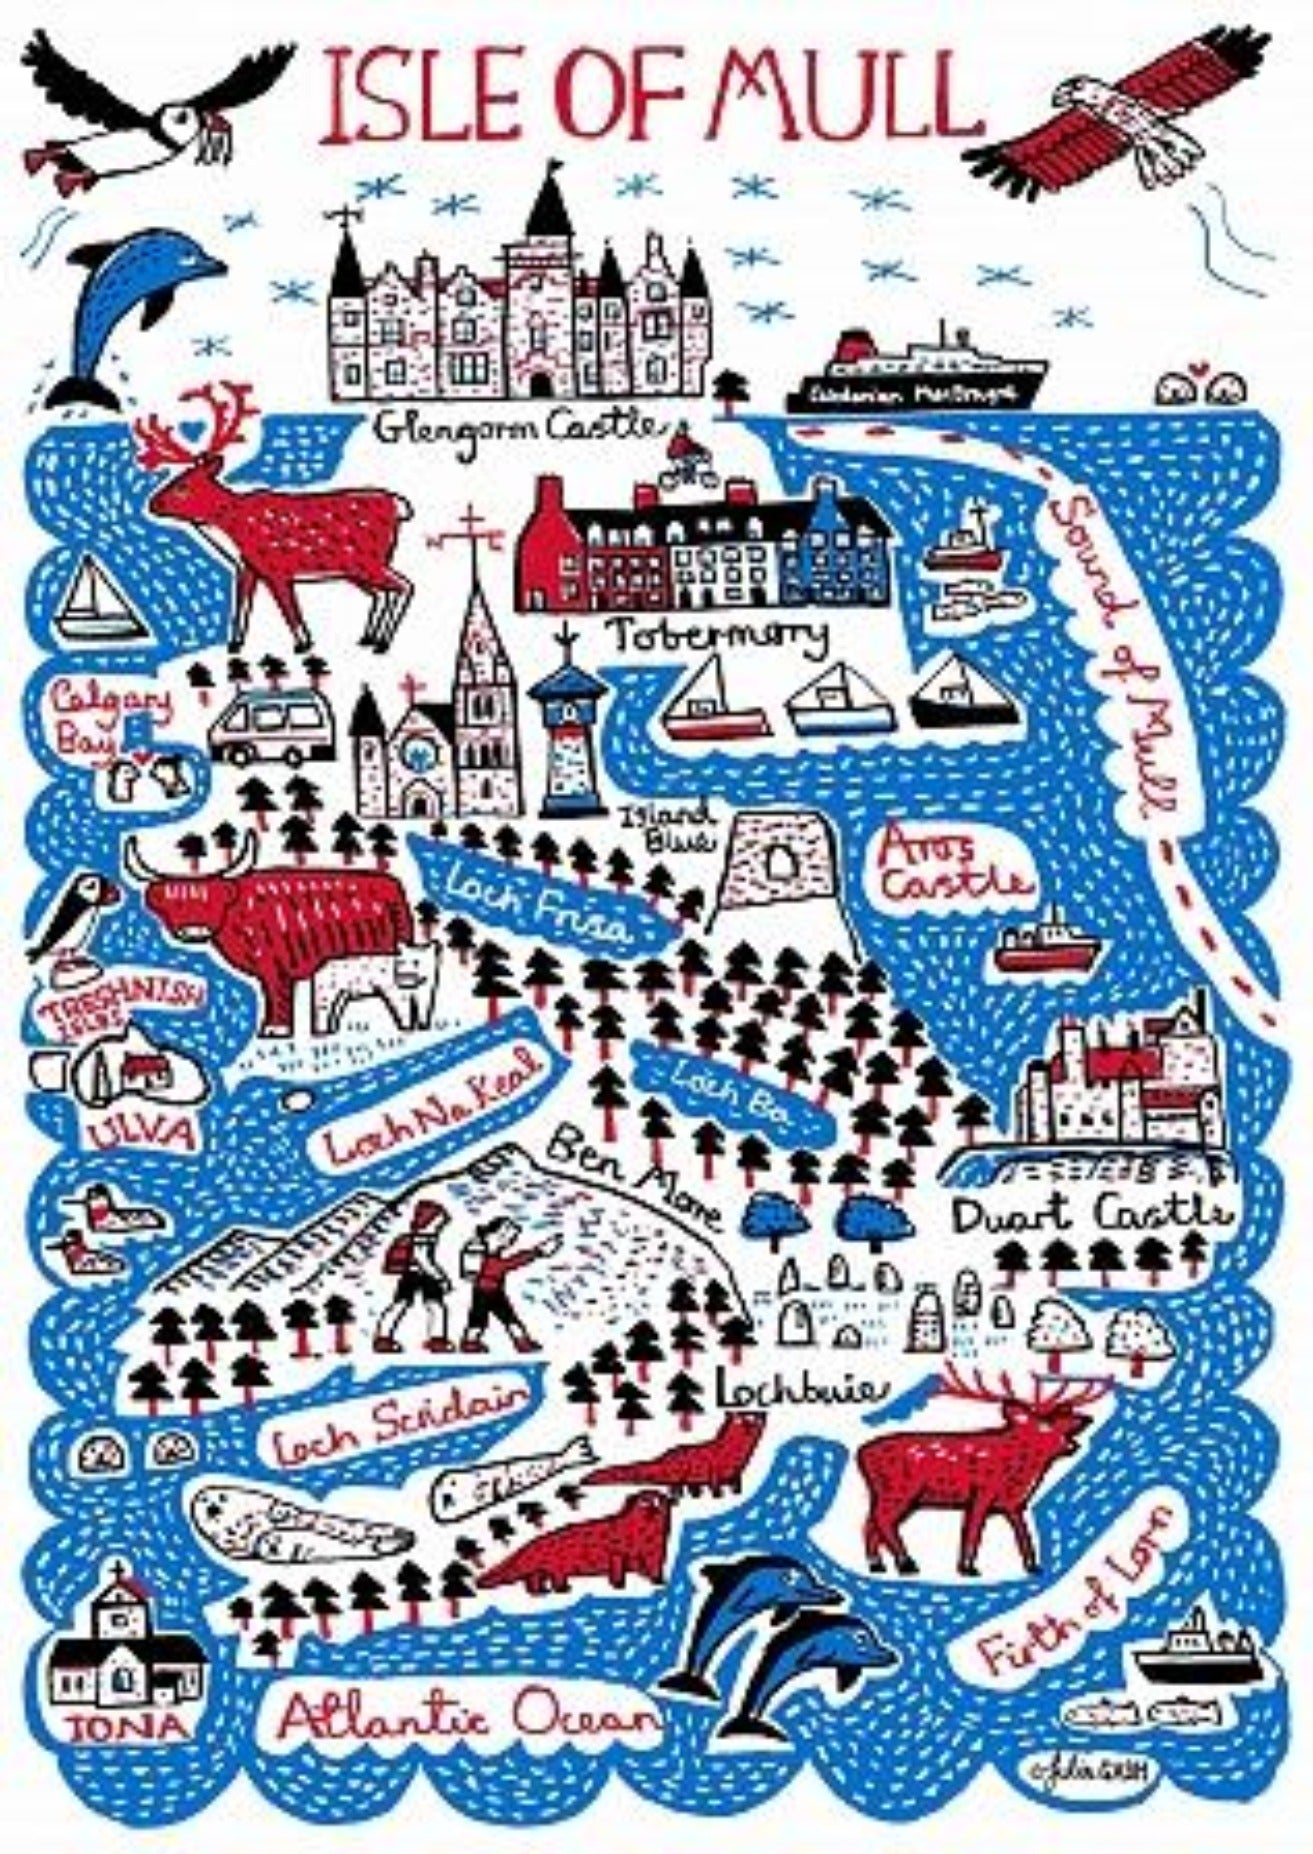 Isle of Mull Art Print by British Travel Artist Julia Gash - Julia Gash